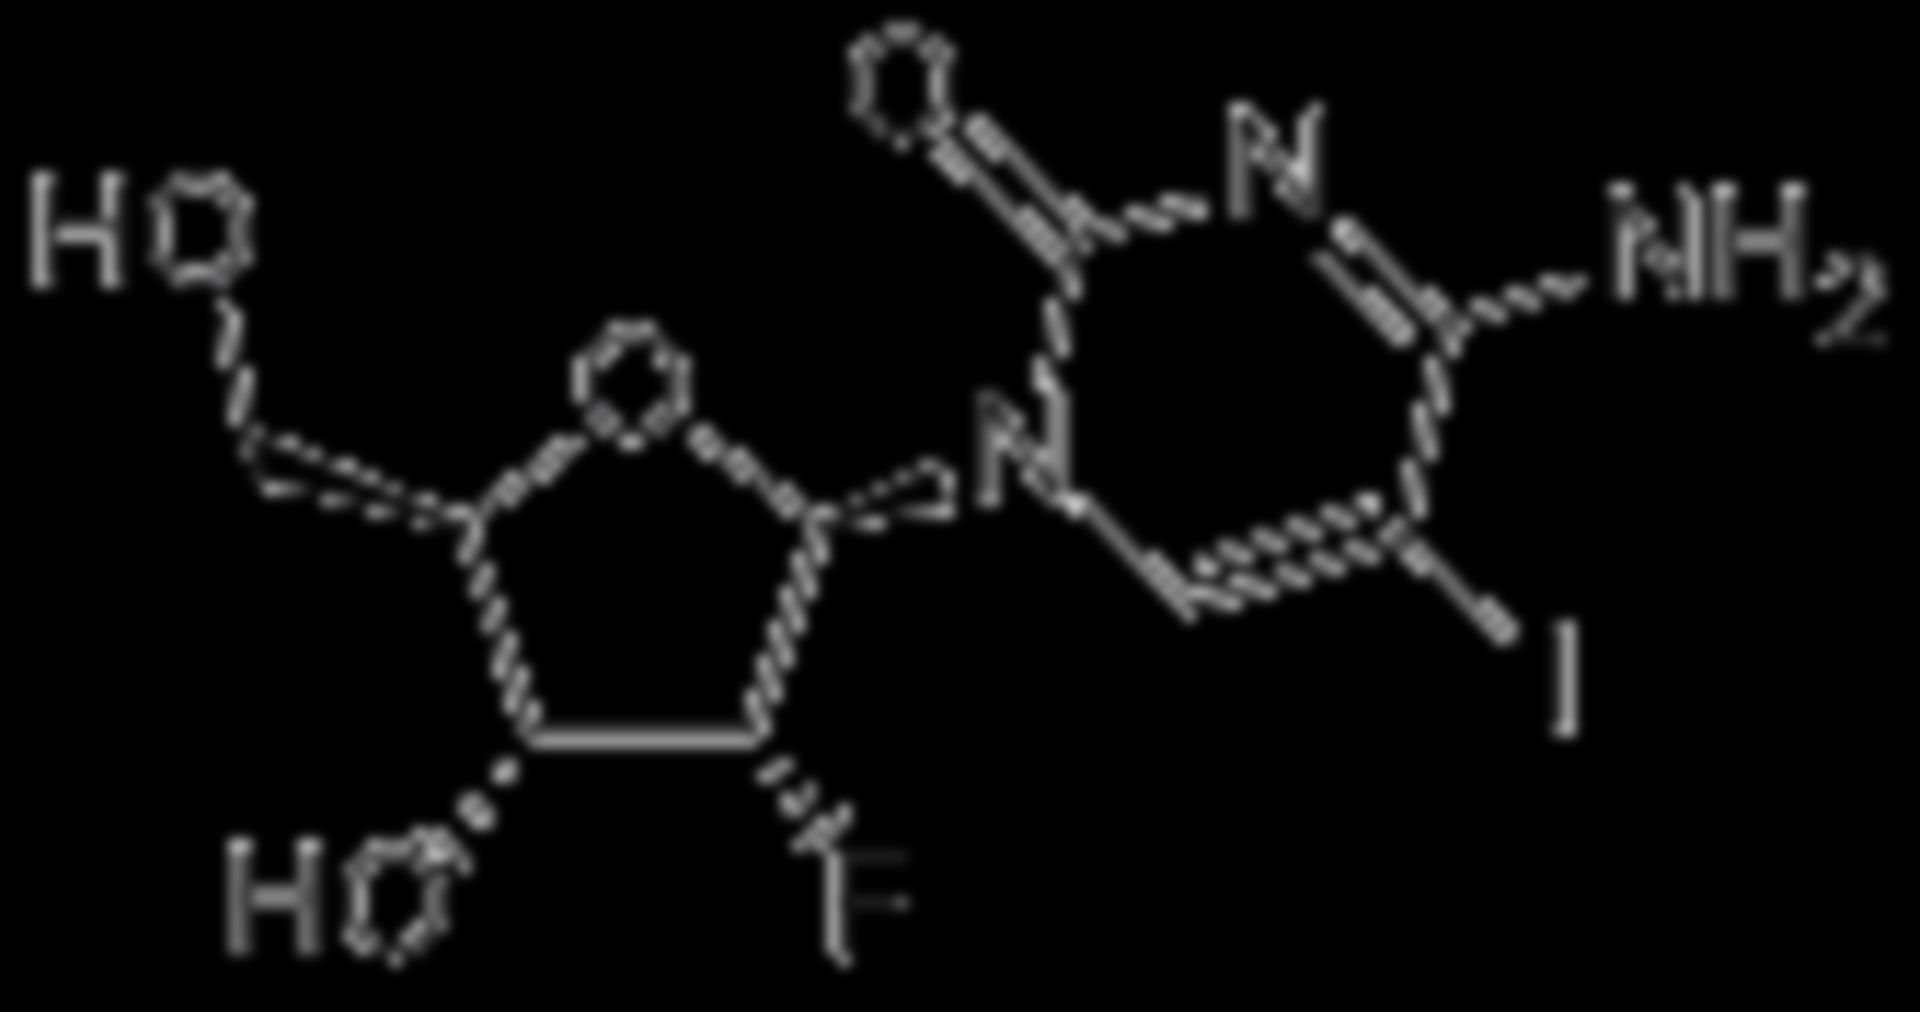 2'-DEOXY-2'-FLUORO-5-IODOCYTIDINE